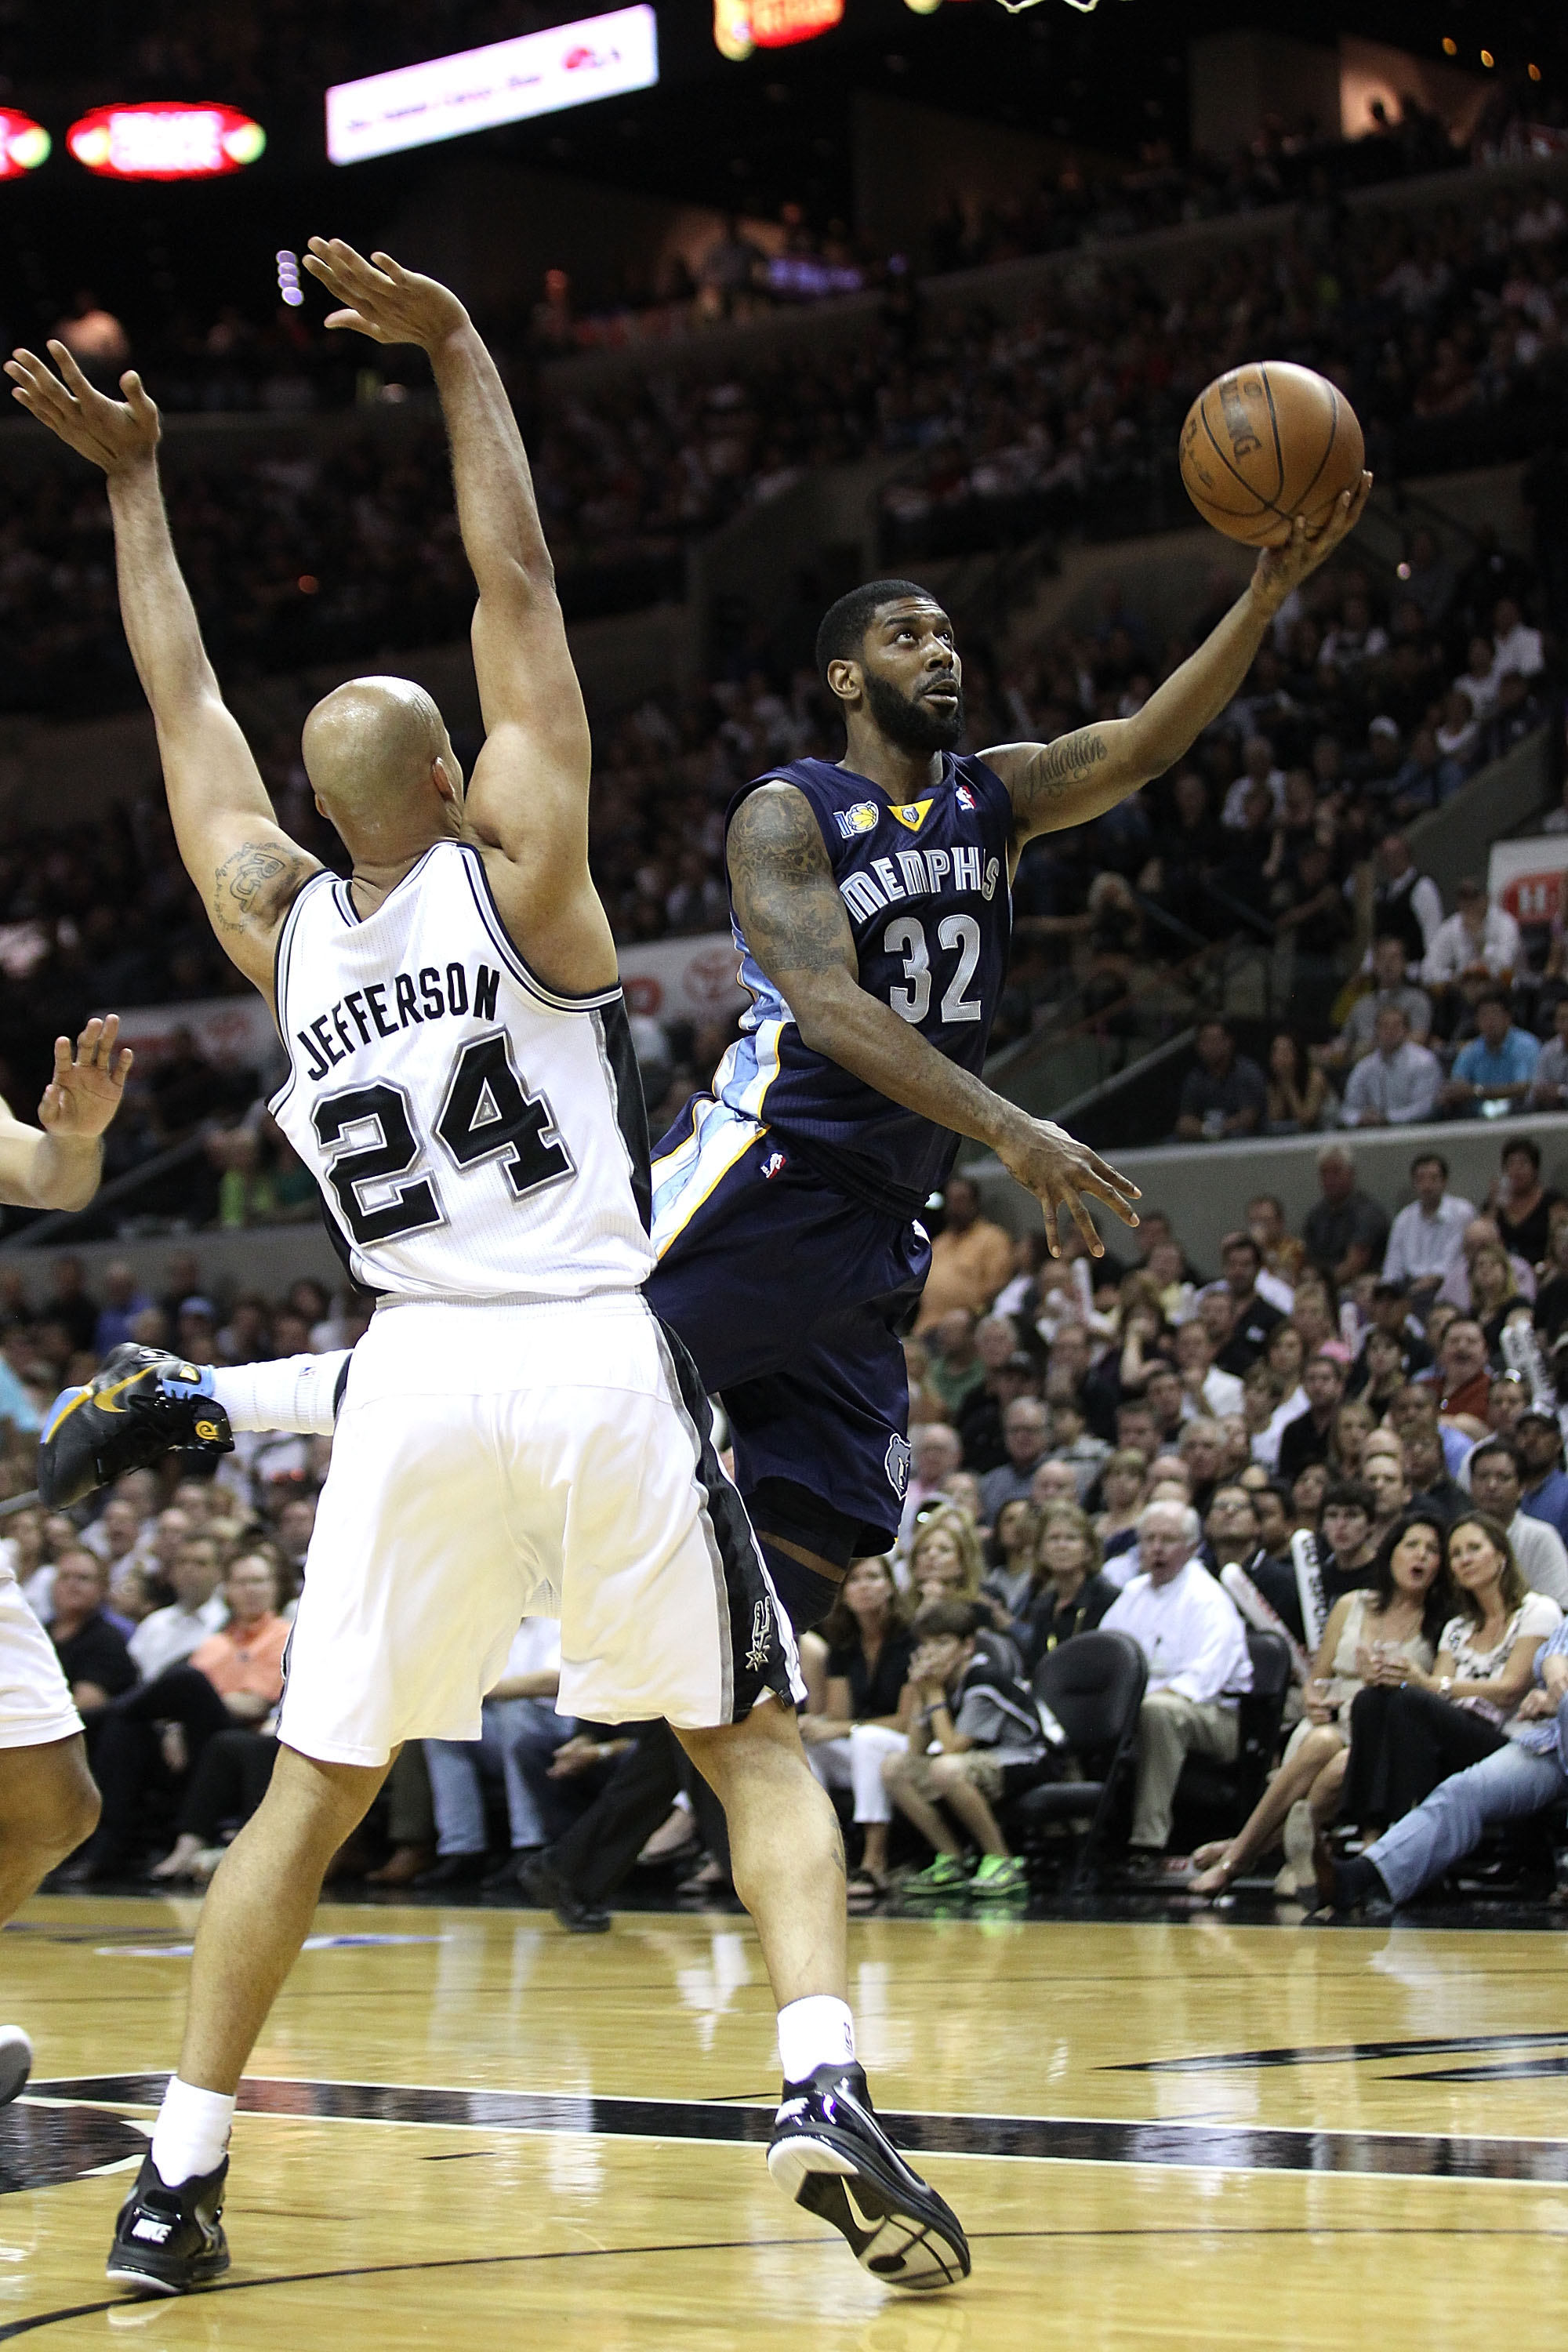 SAN ANTONIO, TX - APRIL 27:  O.J. Mayo #32 of the Memphis Grizzlies shoots against Richard Jefferson #24 of the San Antionio Spurs in Game Five of the Western Conference Quarterfinals in the 2011 NBA Playoffs on April 27, 2011 at AT&T Center in San Antoni